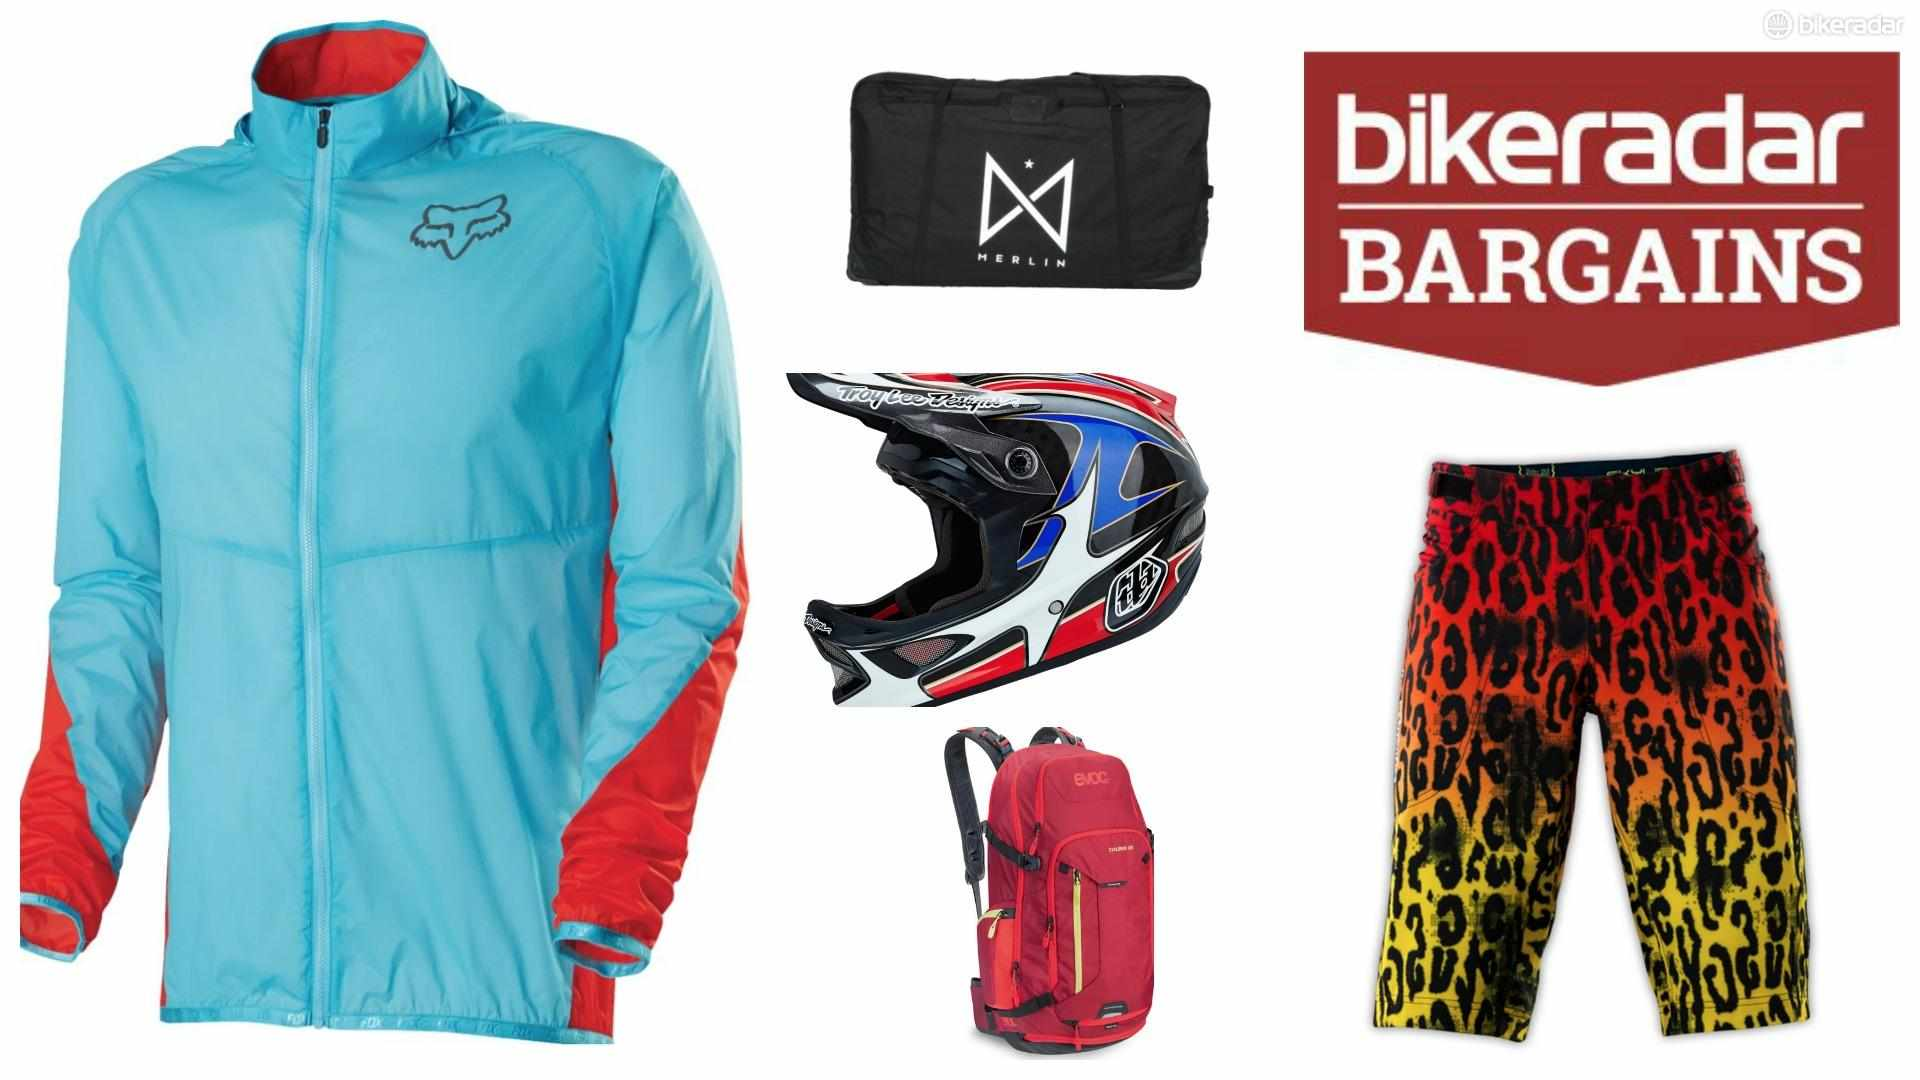 Save some money on your bike kit, have more money for your MTB holiday. Simples!